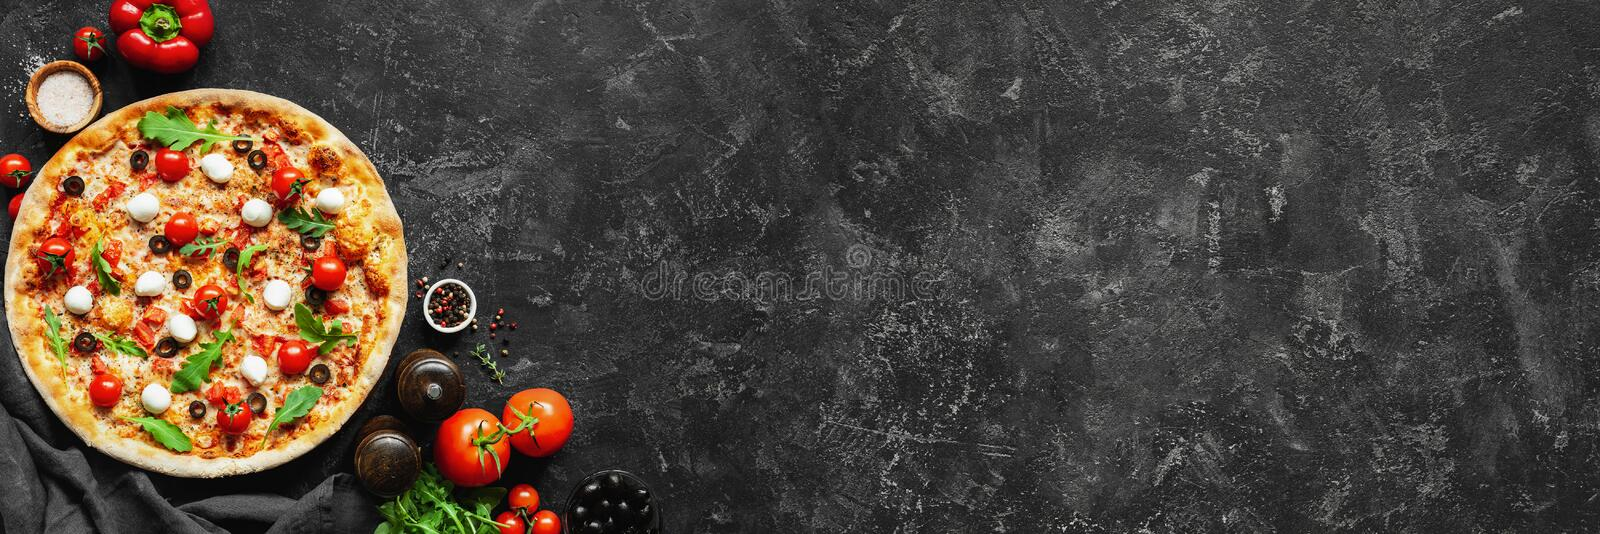 Italian pizza and pizza cooking ingredients on black concrete background royalty free stock photos